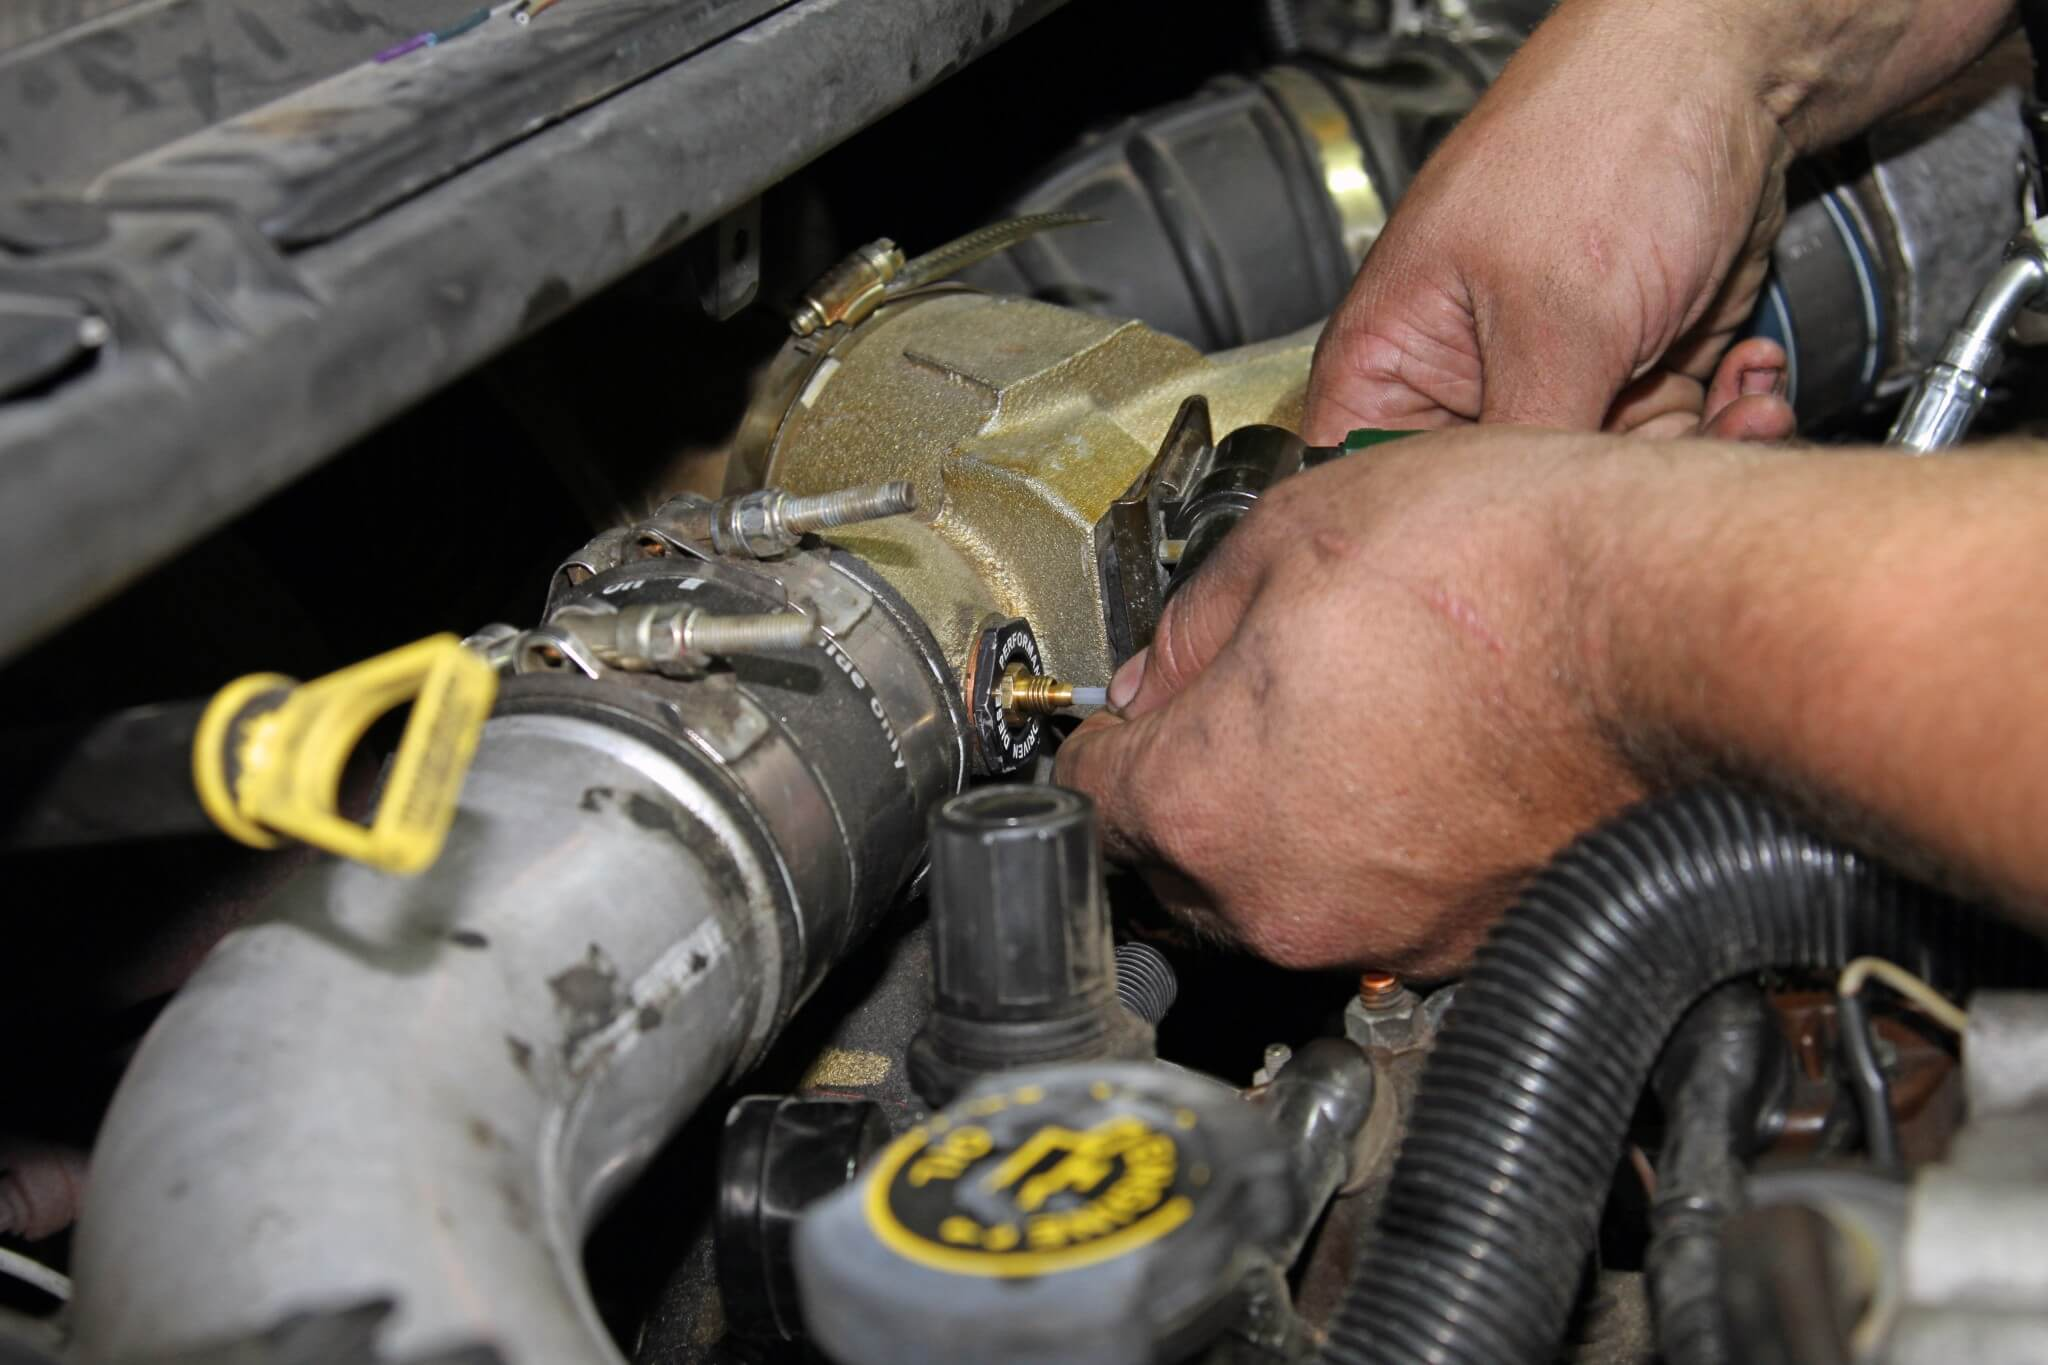 20. The nylon tubing for the boost gauge connects directly to the supplied fittings. Be sure to install the small ferrule or the tubing will not seal. Carter covers the nylon tubing with a protective sheath to prevent it from being damaged under the hood.